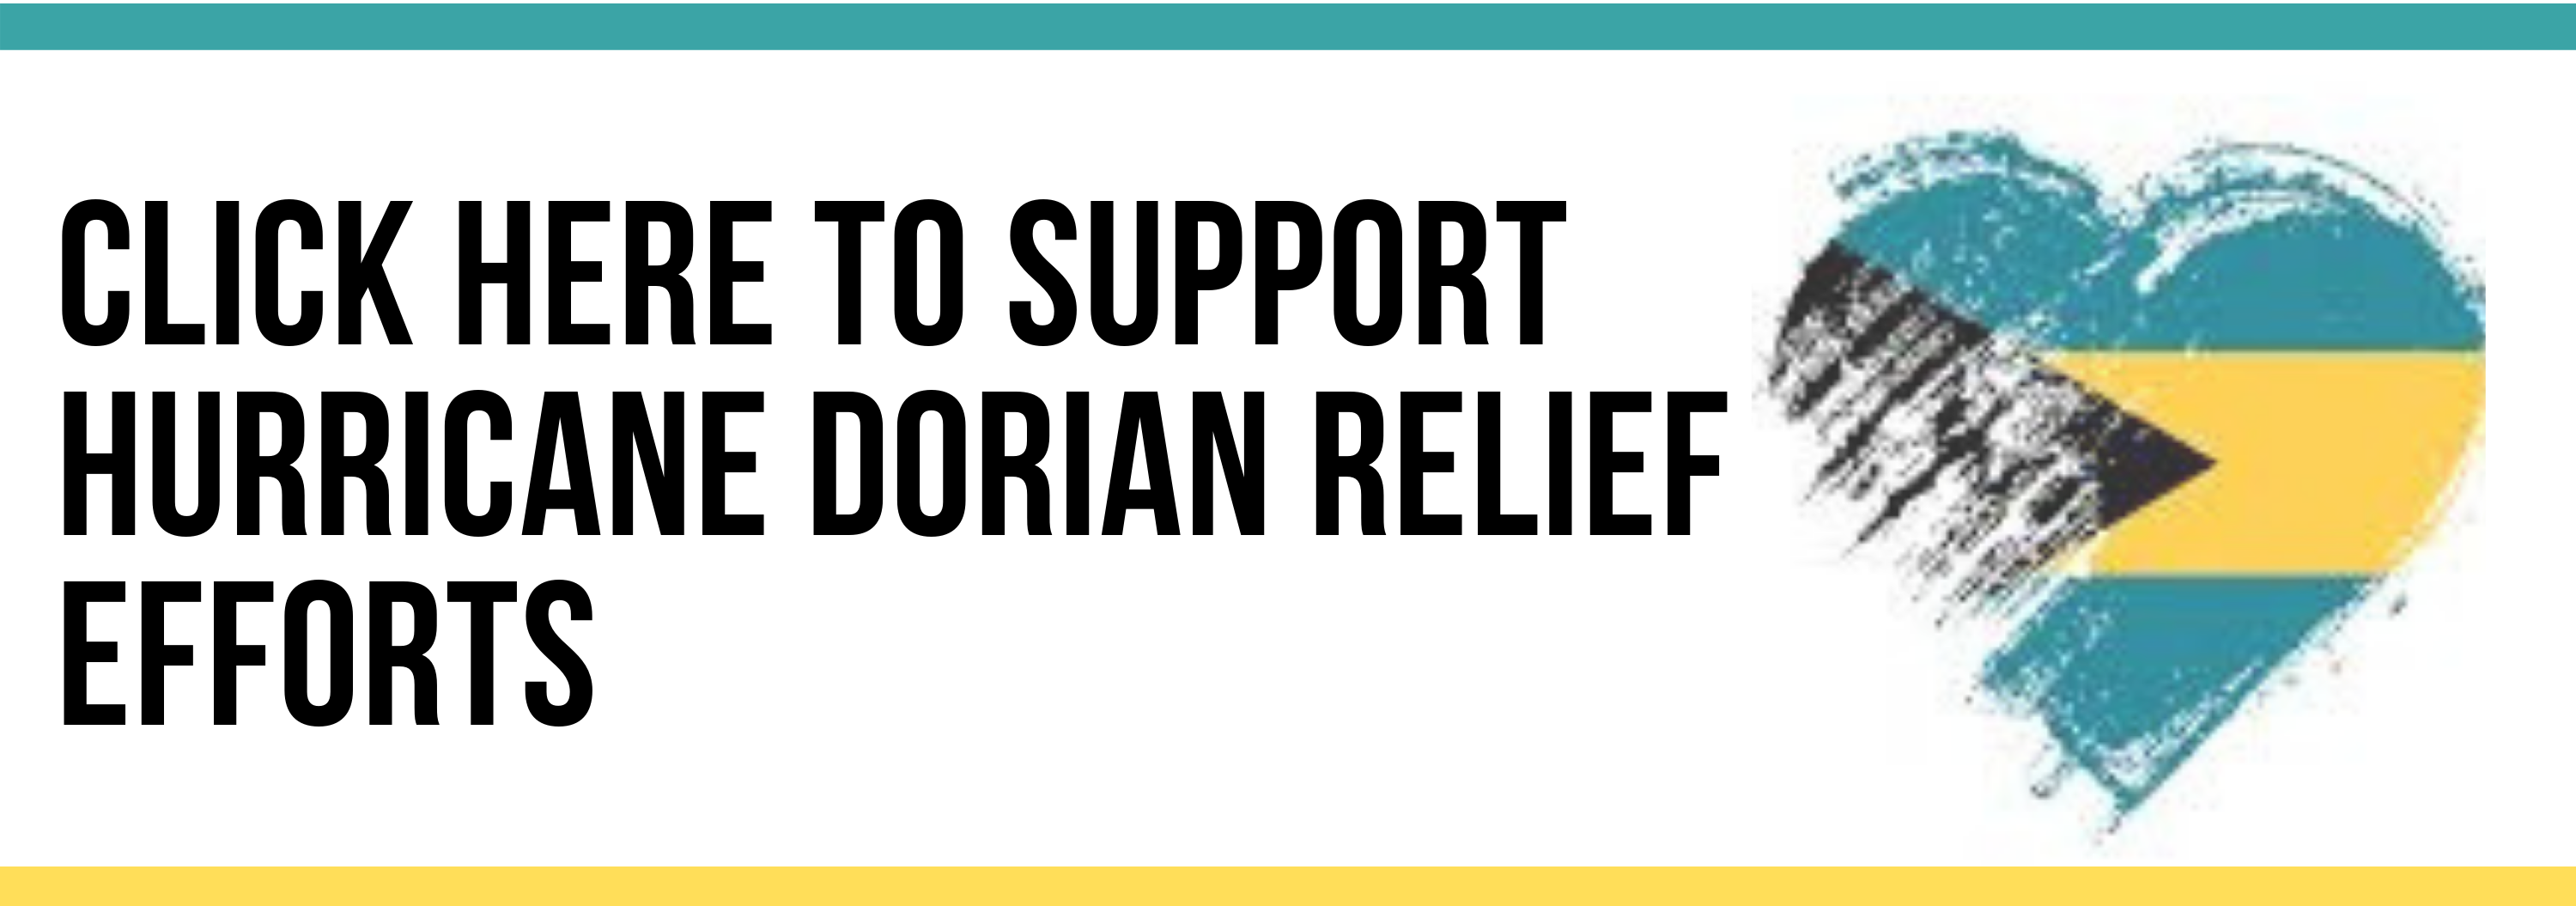 Click here to support hurricane Dorian relief efforts